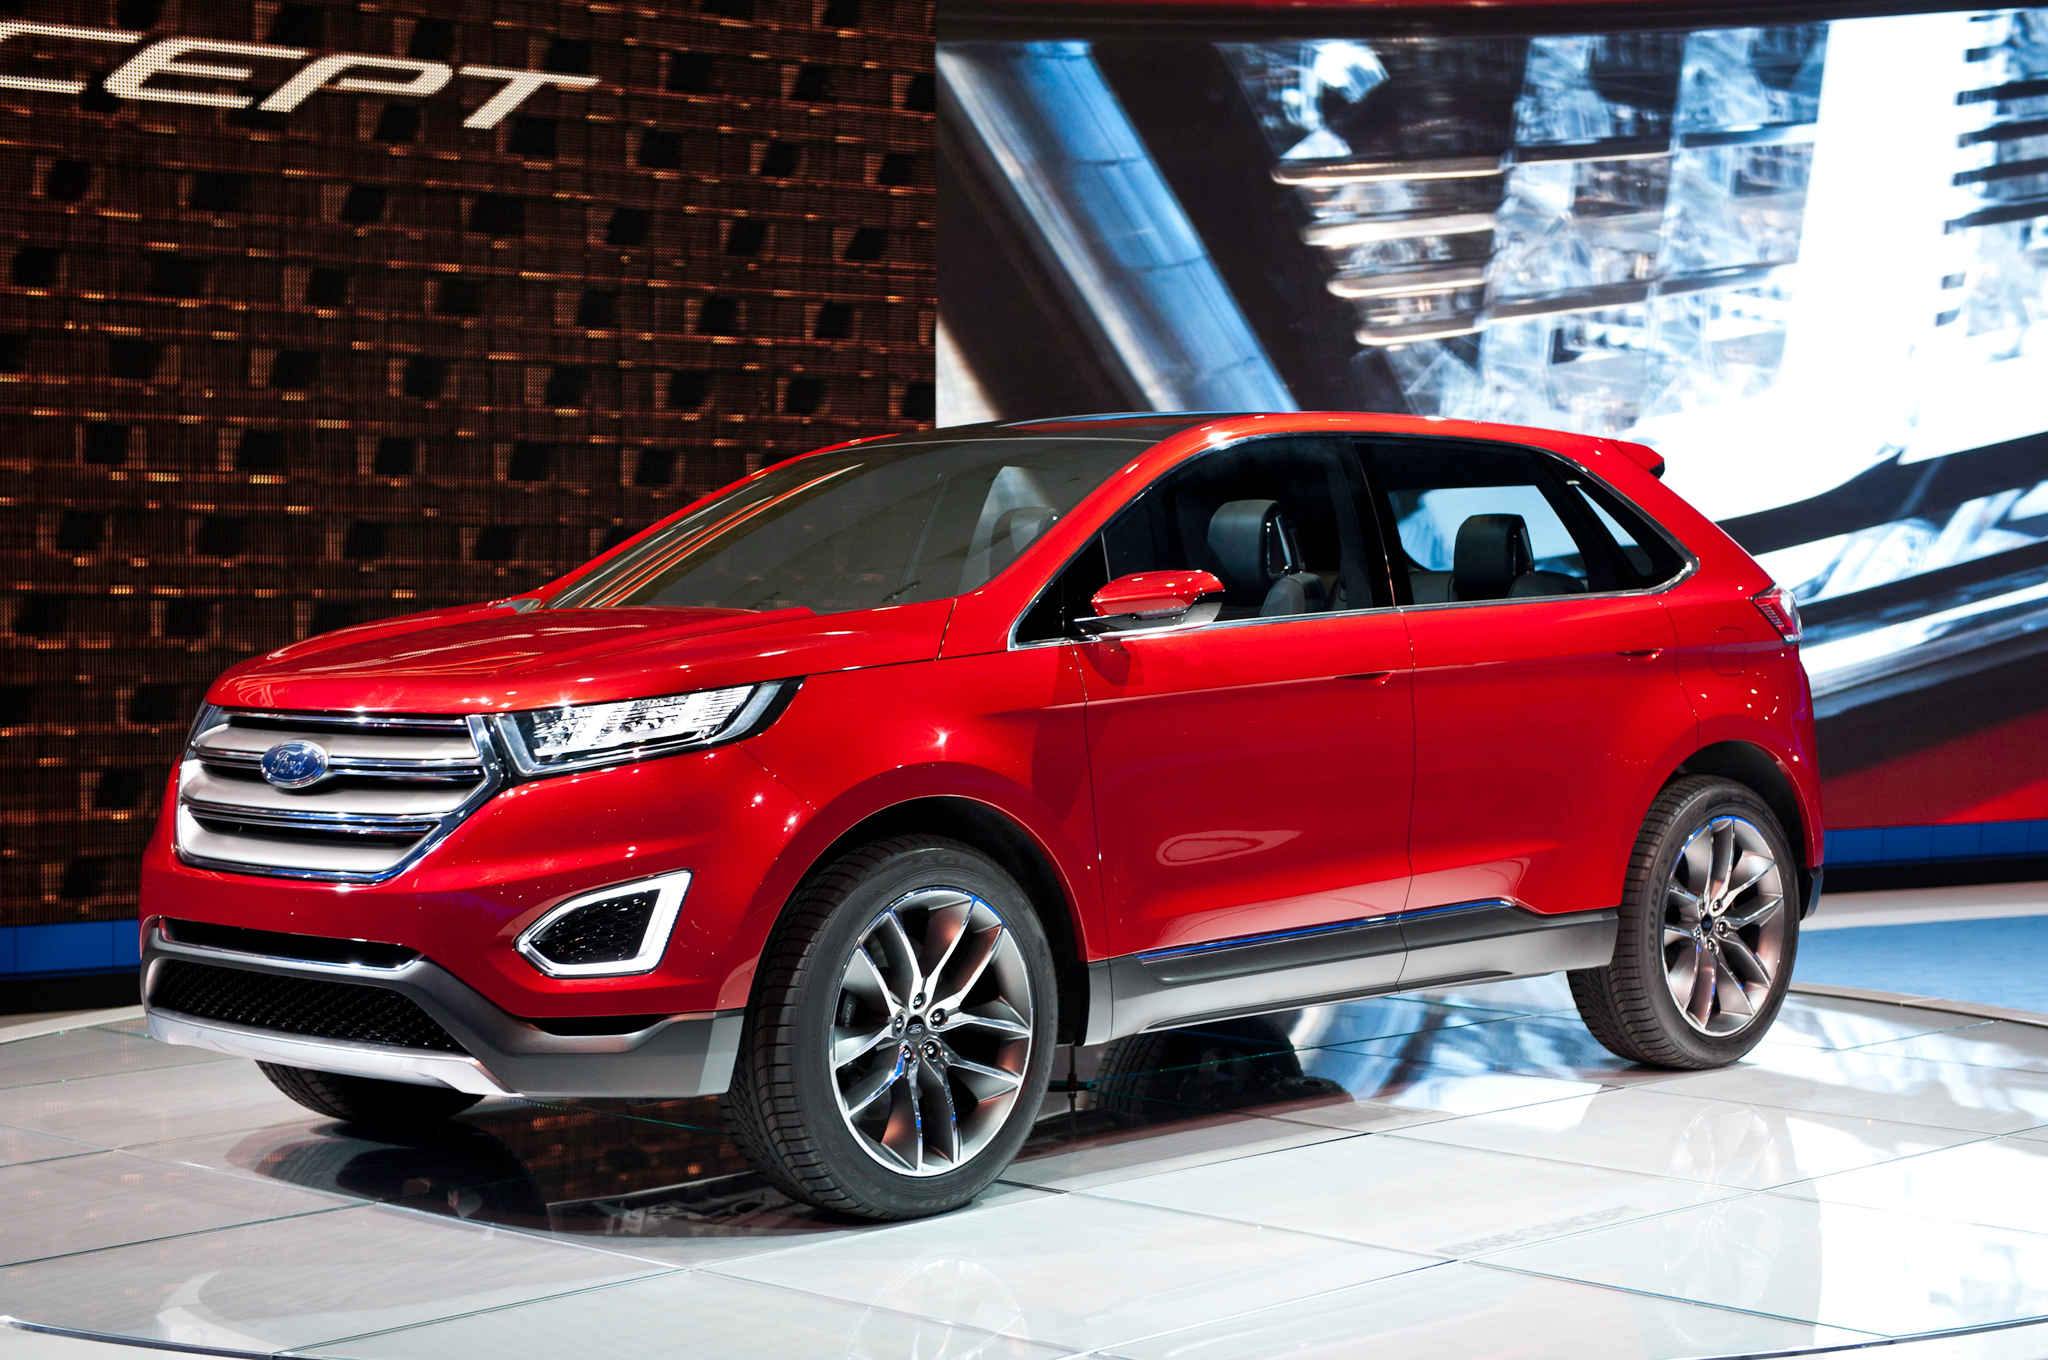 2015 ford edge information and photos zombiedrive. Black Bedroom Furniture Sets. Home Design Ideas